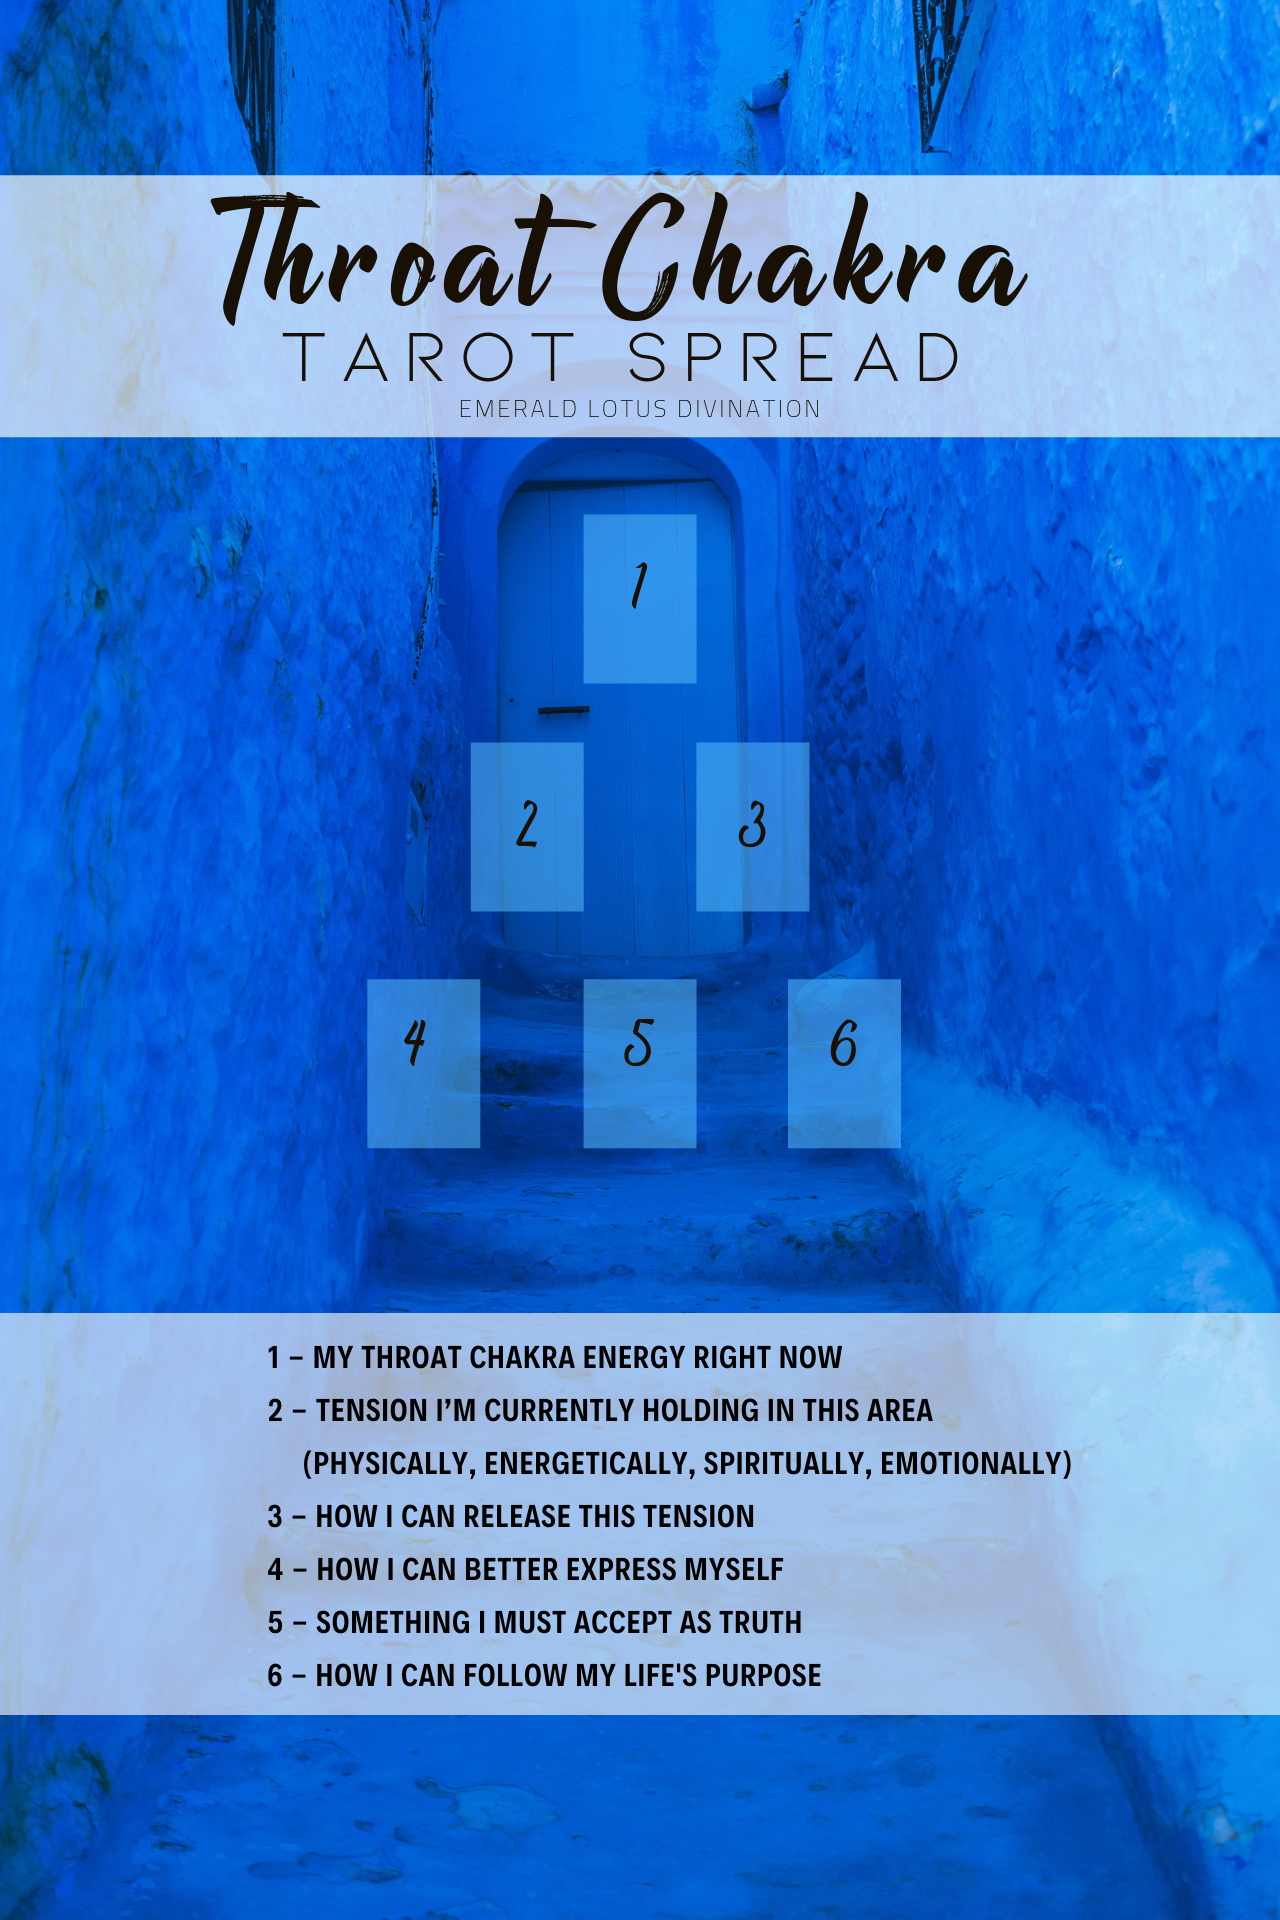 Throat-Chakra-Tarot-Spread-Emerald-Lotus-Divination.png